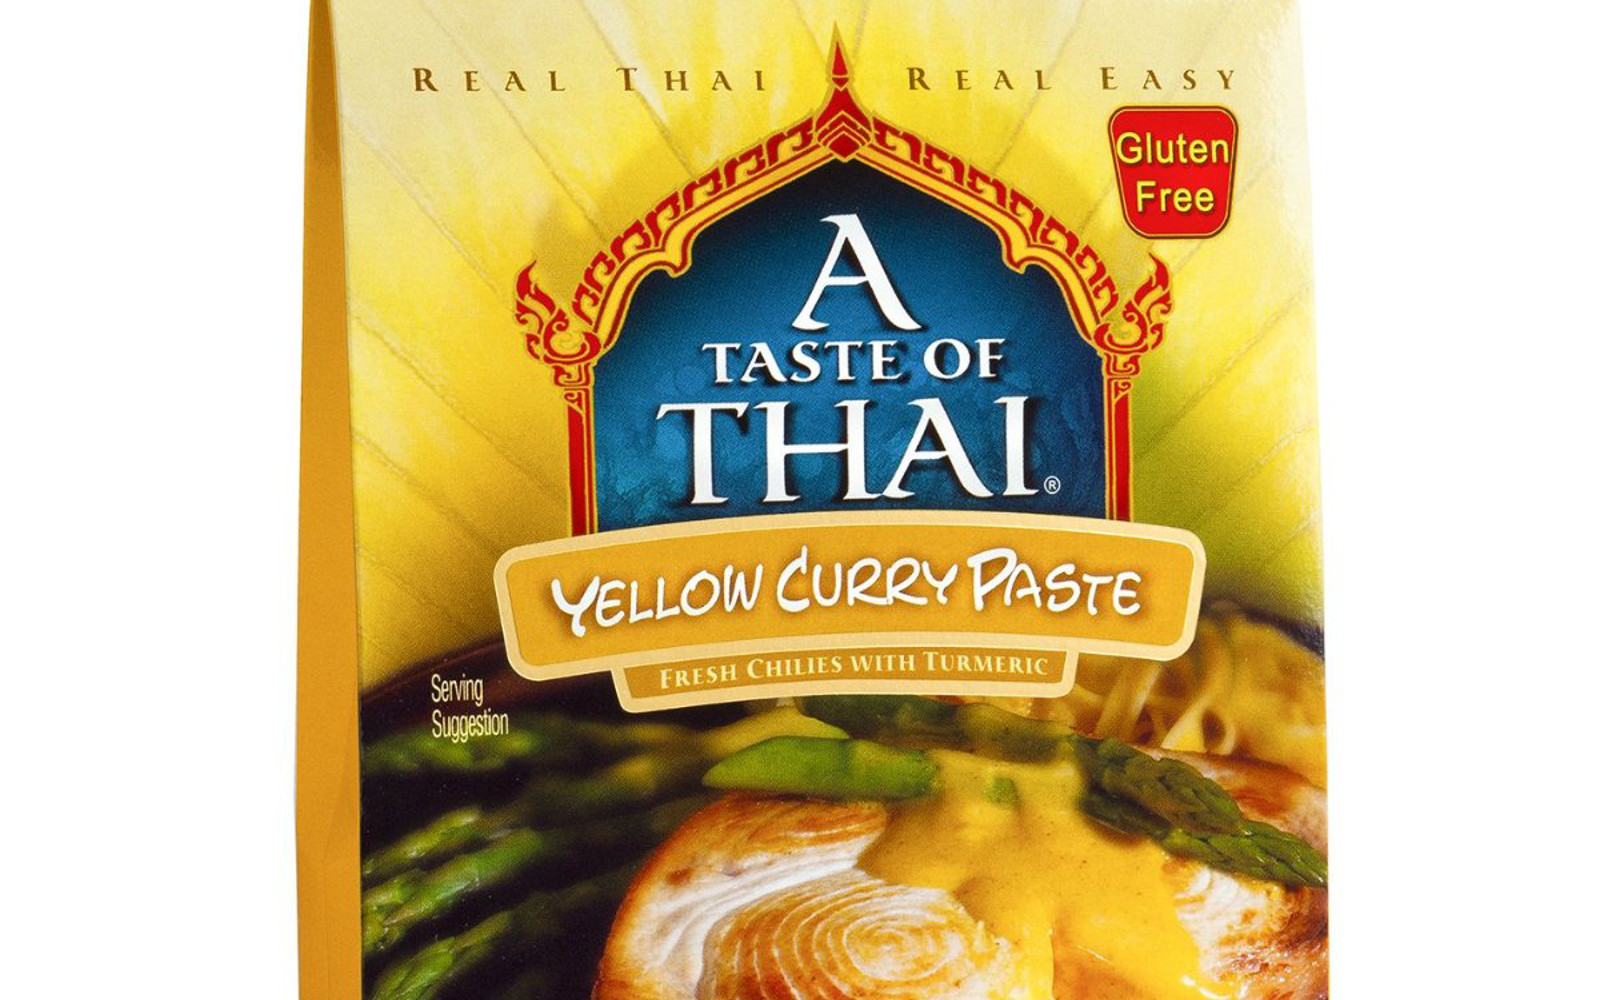 A Taste of Thai Yellow Curry Paste